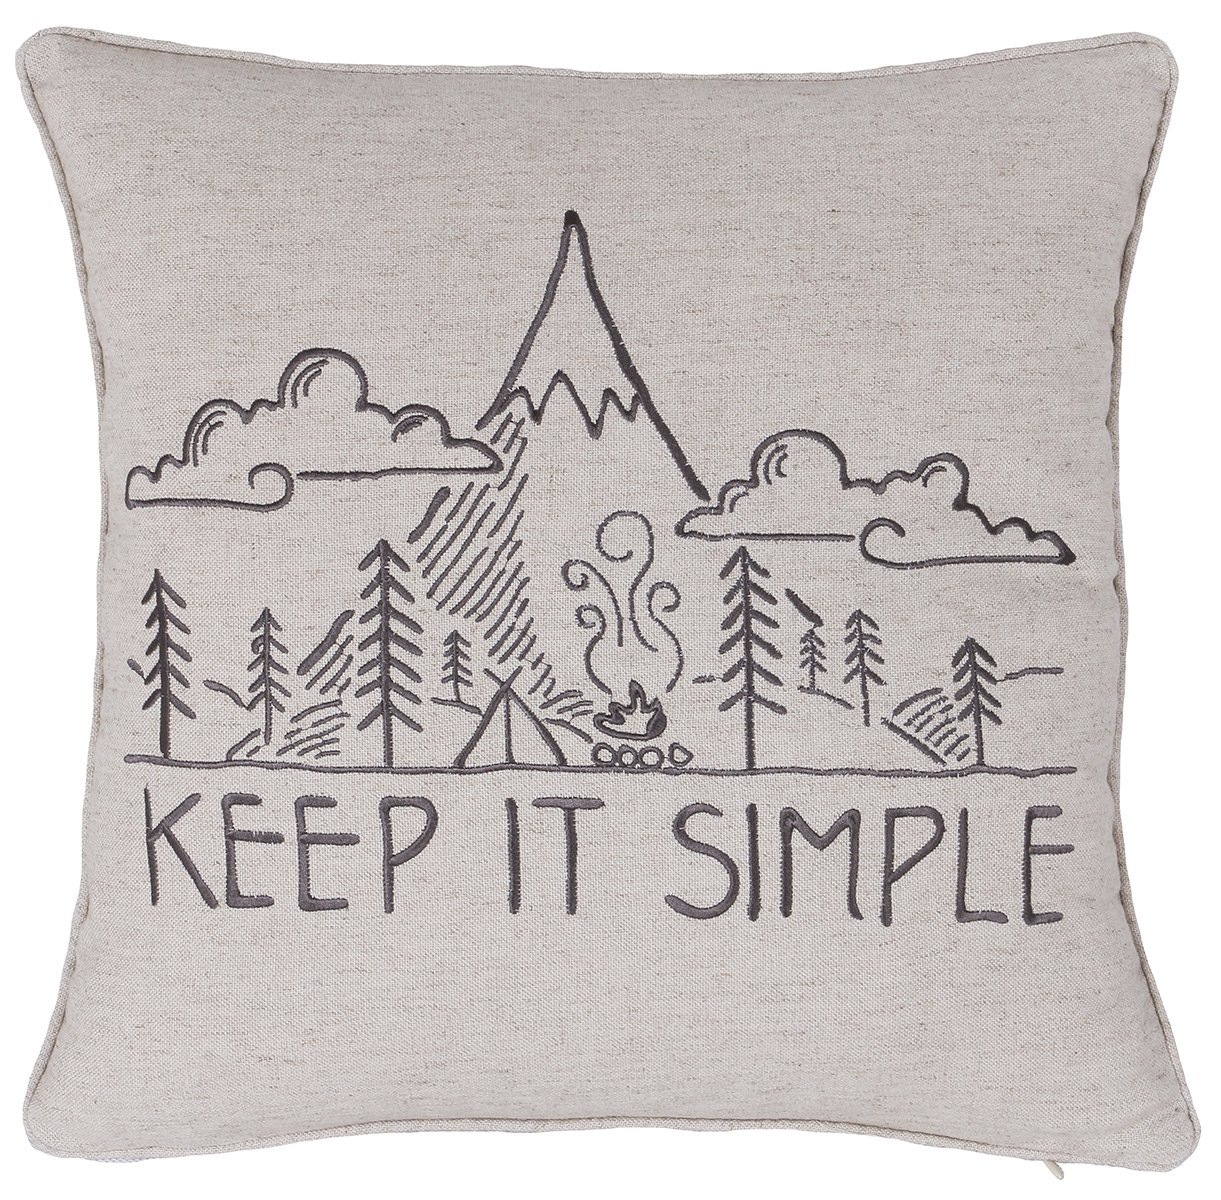 ADecor Pillow Covers Keep it simple Quote Pillowcase Embroidered Pillow cover Decorative Pillow Standard Cushion Cover Gift Love Inspiration Teen Boys Girls Gift (18X18, Linen)